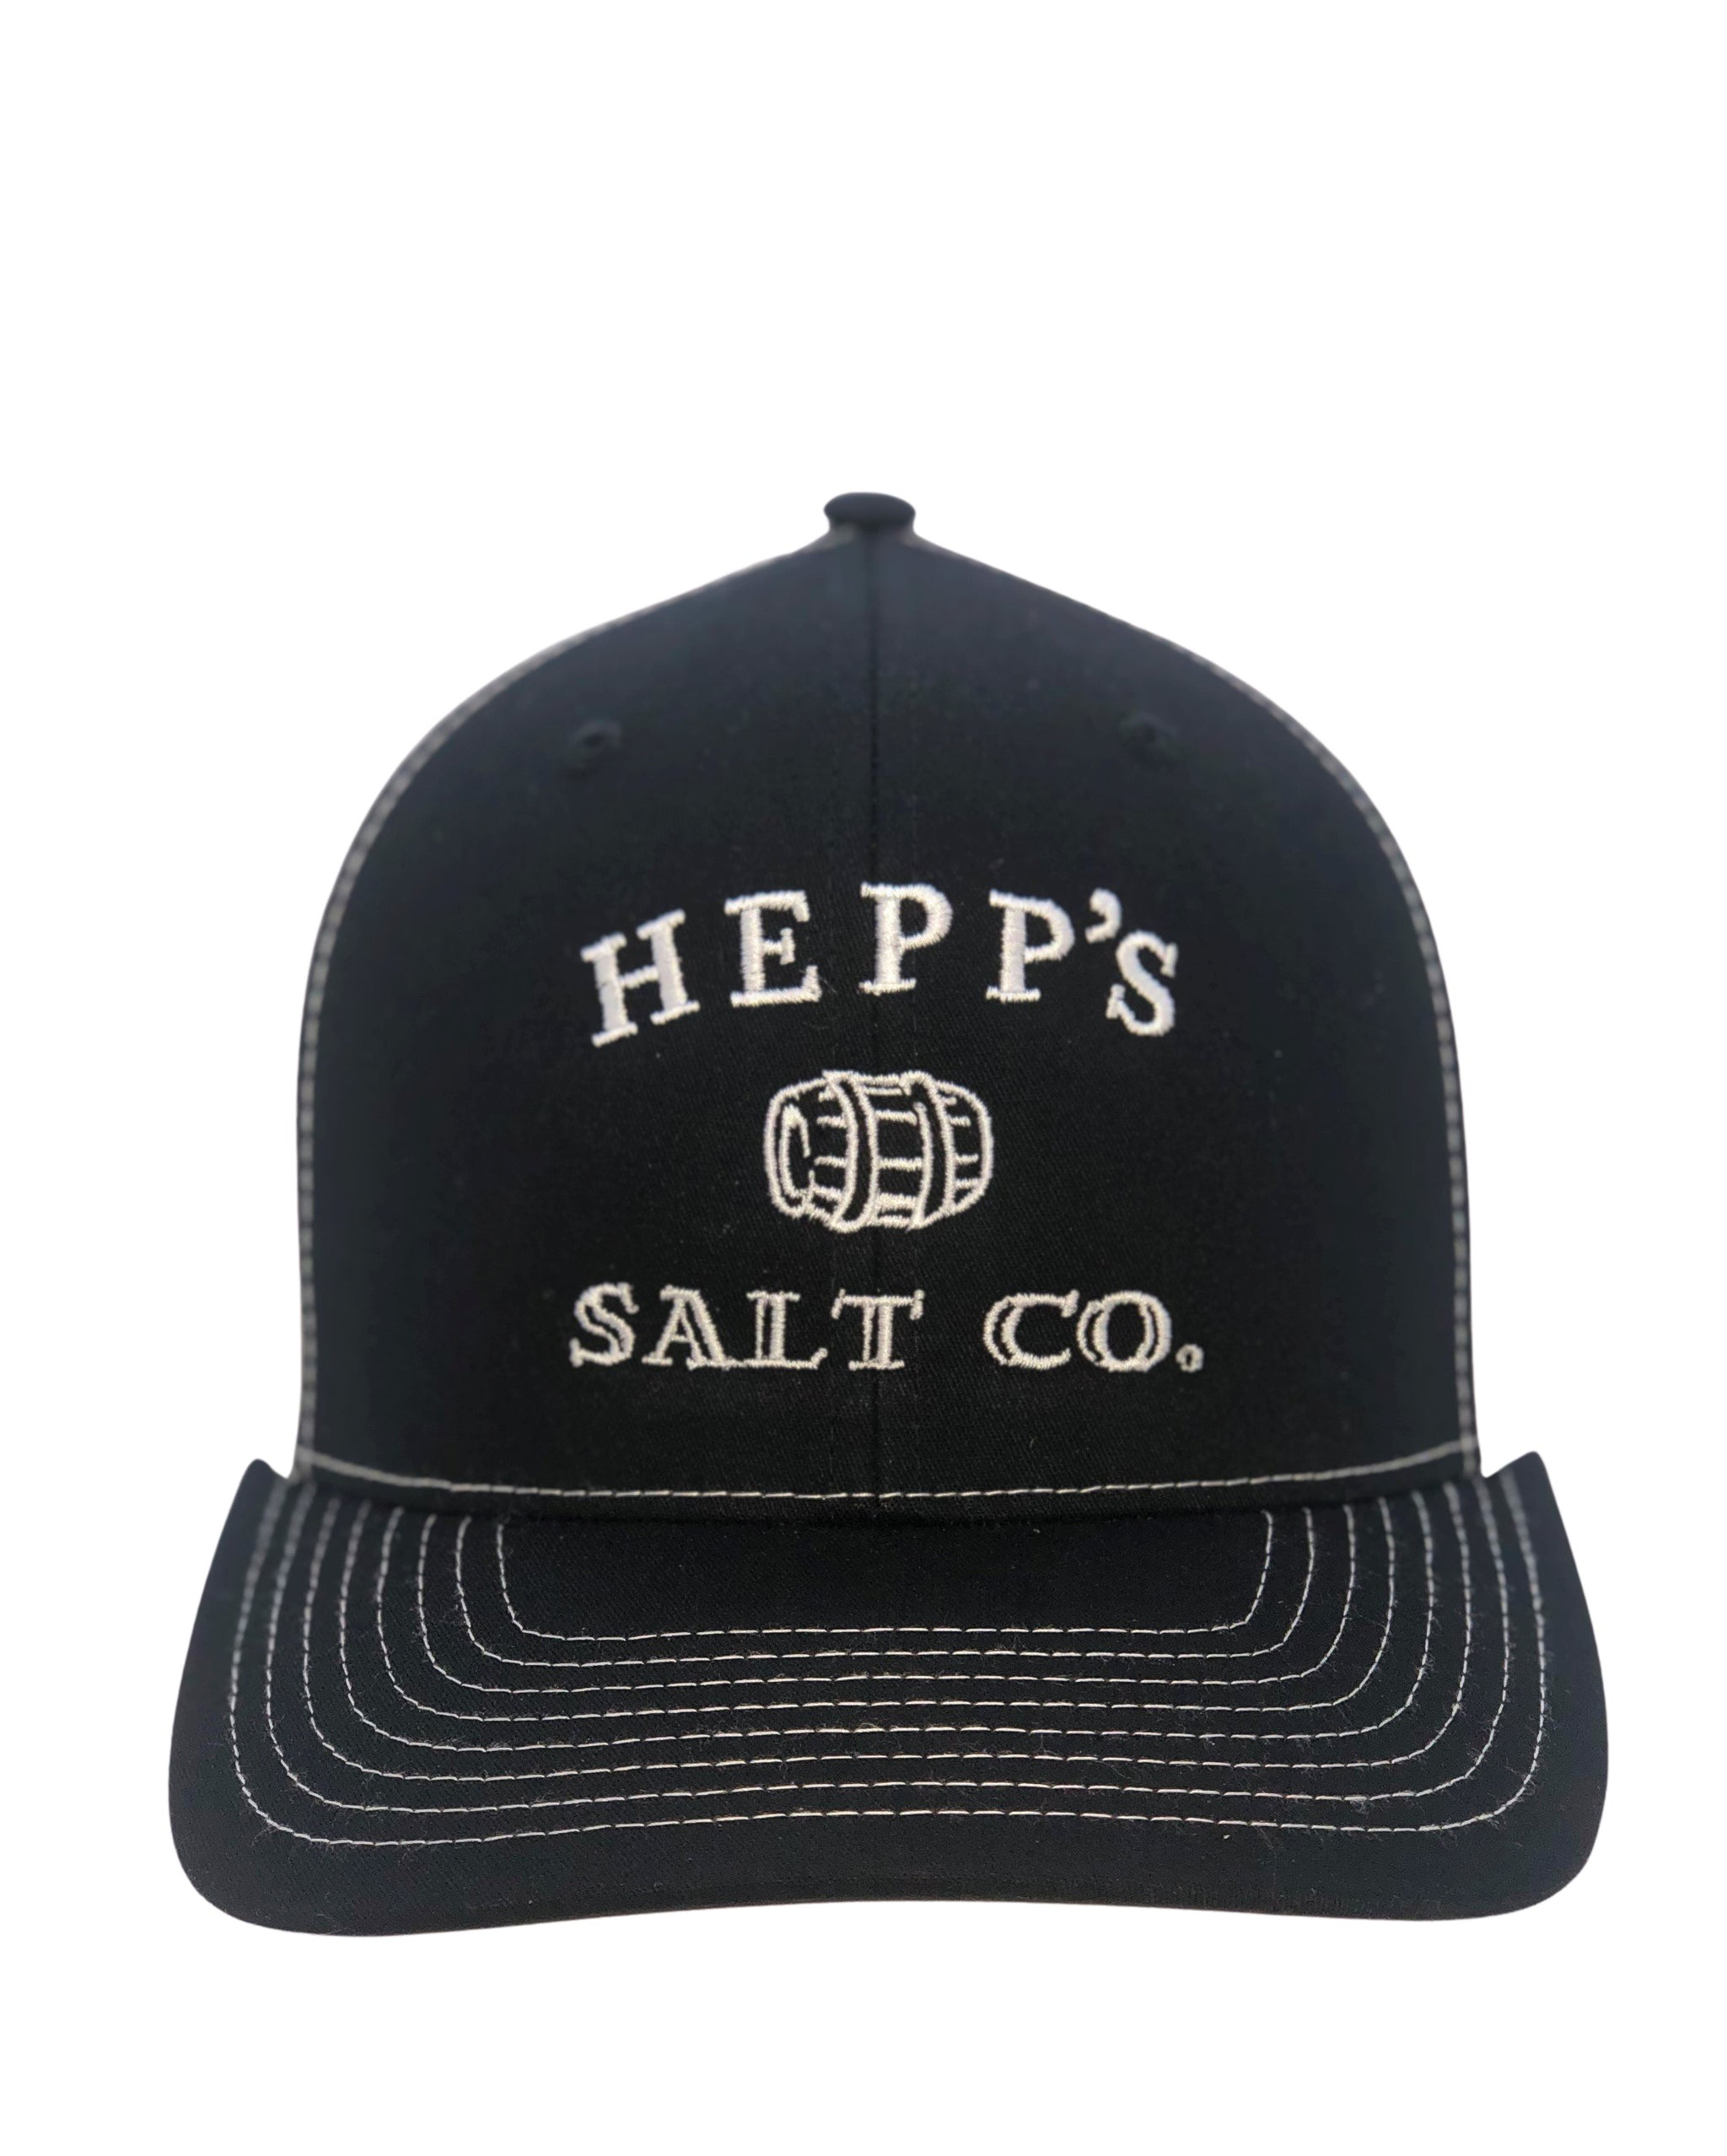 Hepps 112 Richardson Trucker Snapback Hat - HEPPS SALT CO.